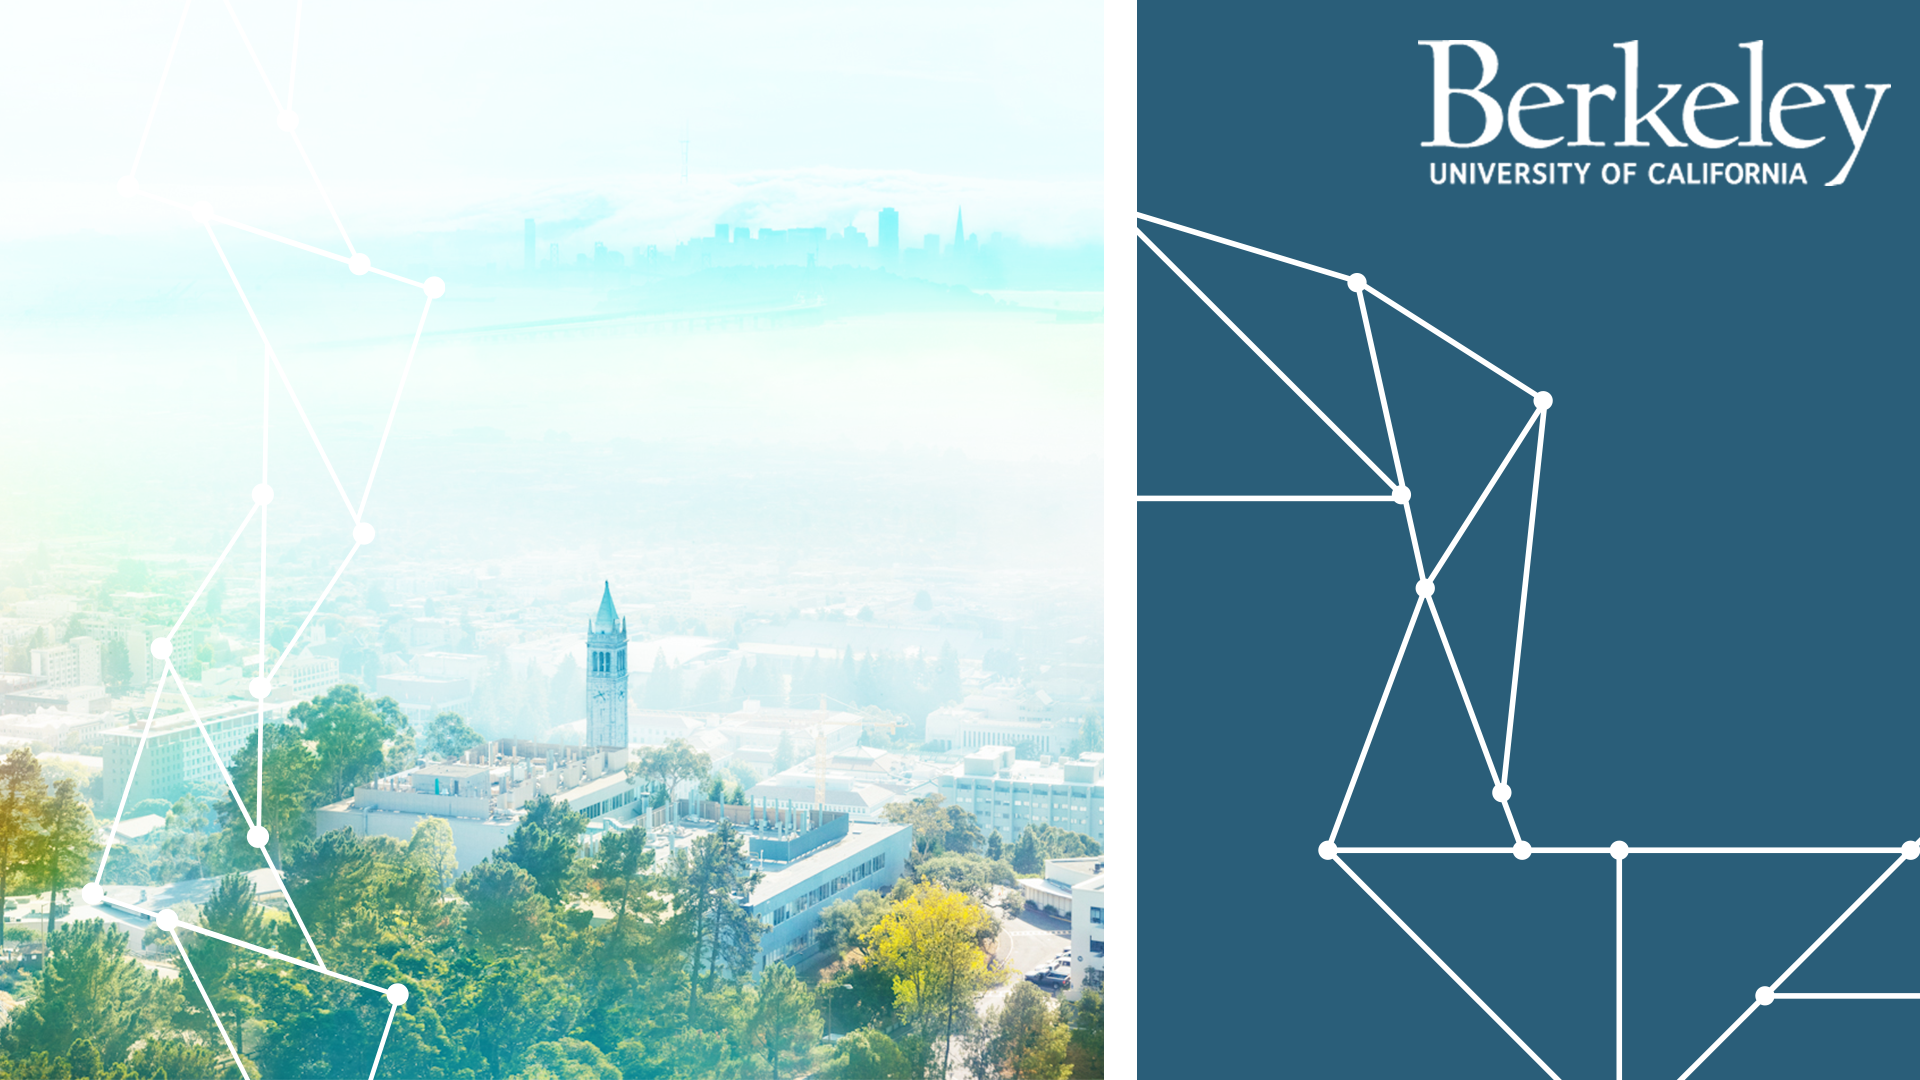 Download Uc Berkeley Wallpaper Gallery 1920x1080